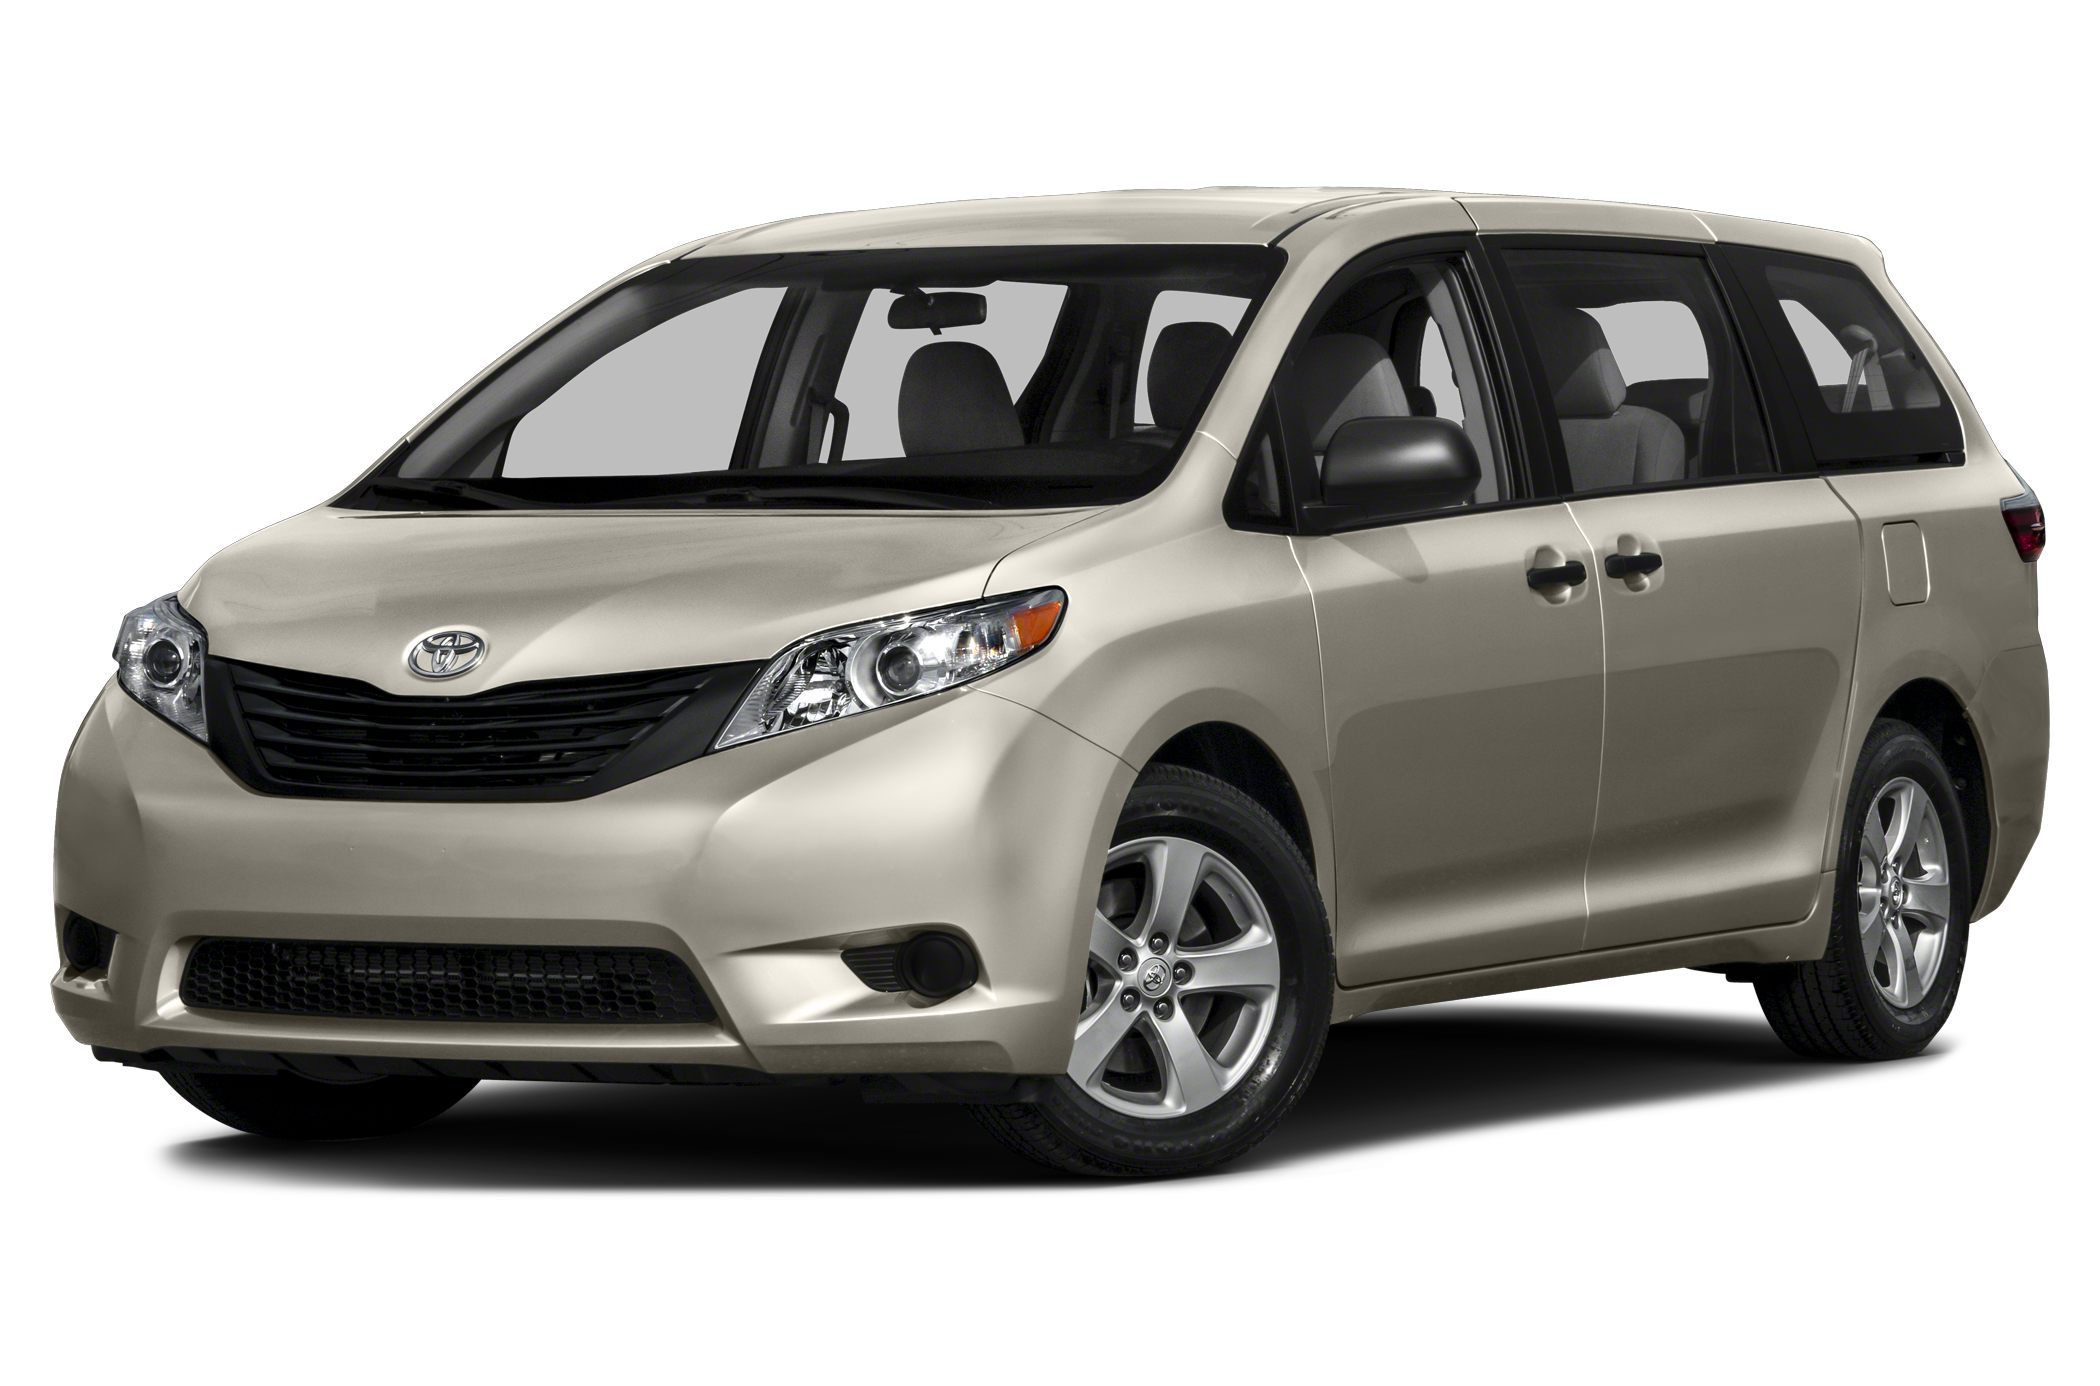 2015 Toyota Sienna L 7 Passenger Families always have somewhere to go and the Toyota Sienna can h